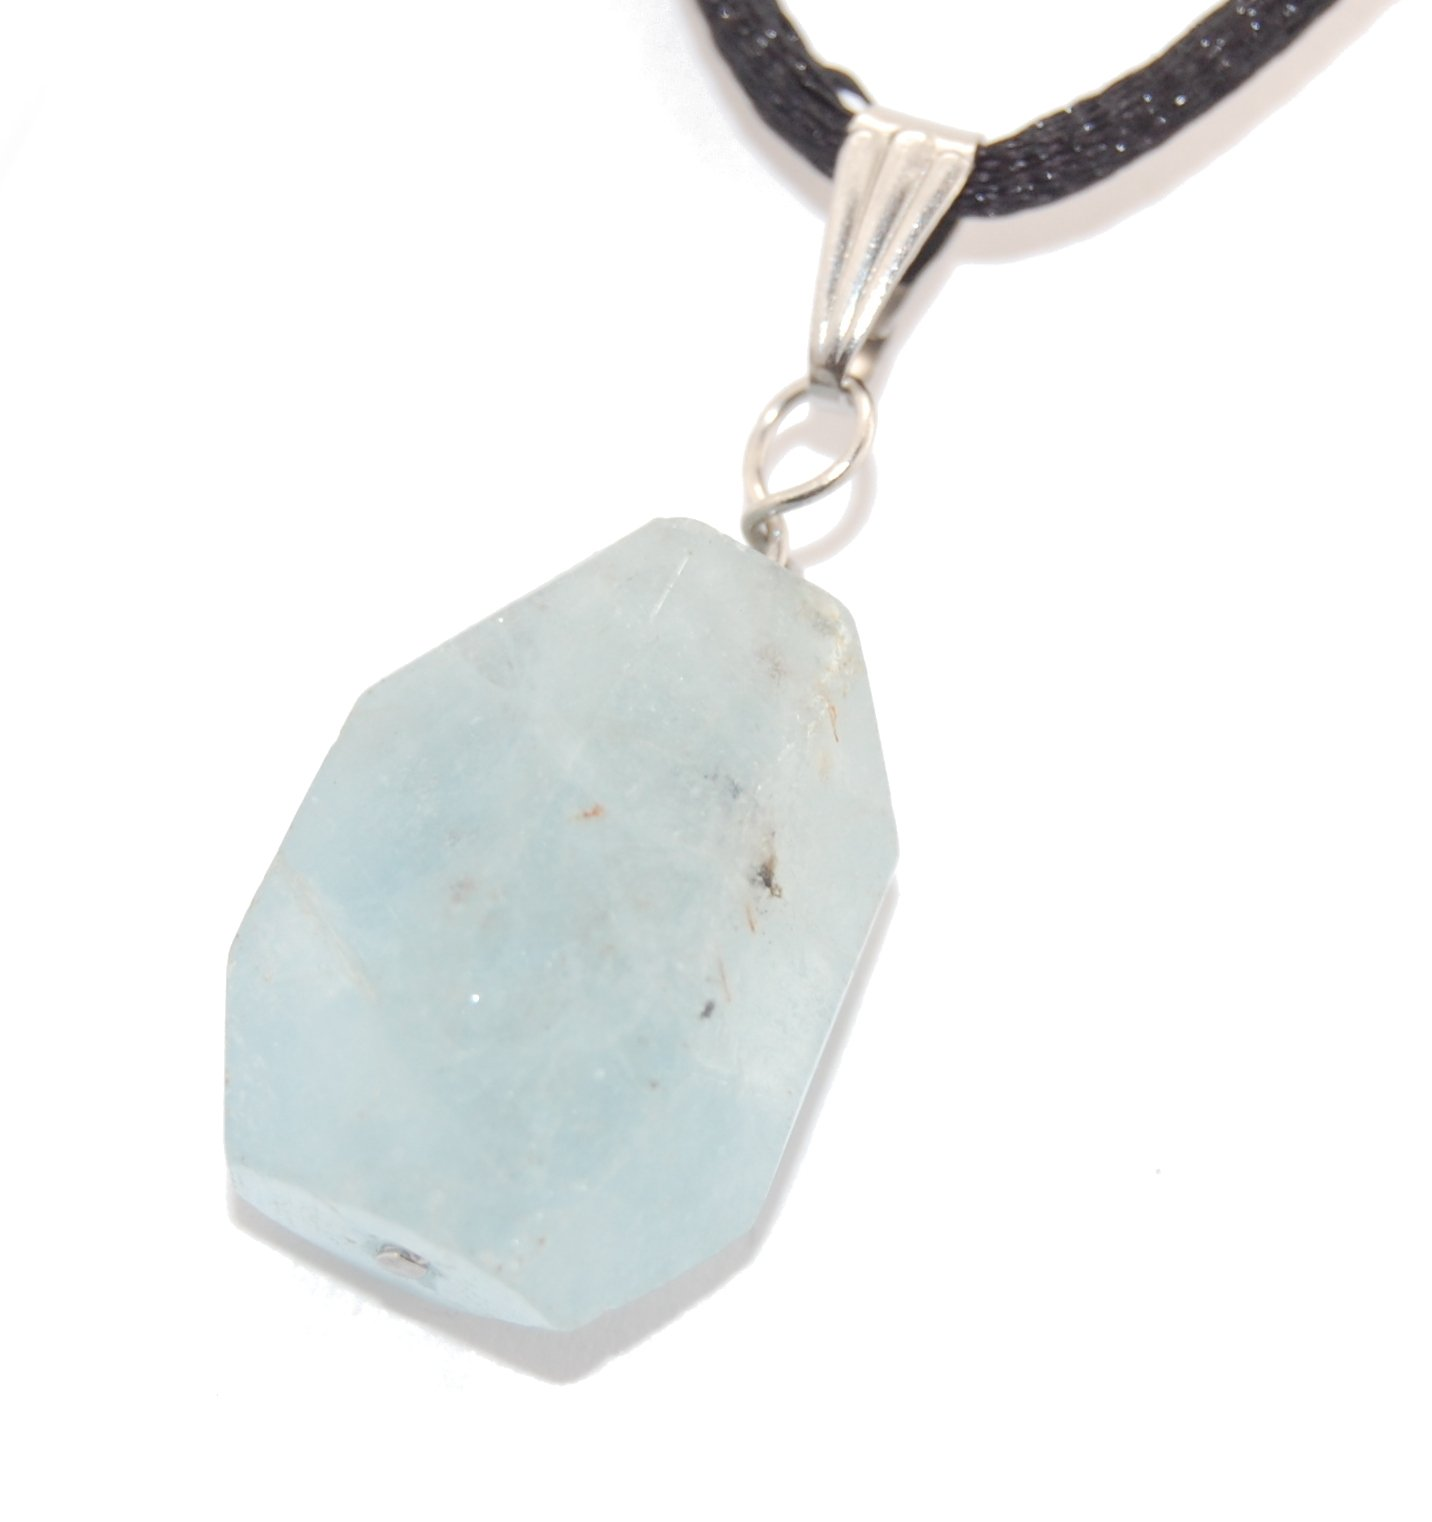 Miner's Horde - Faceted Chunk Nugget Aquamarine 18-19mm tall Blue - 20'' to 24'' Adjustable Black Poly Woven Washable Cord Stainless Bail, Natural Crystal Gemstone Carved Necklace Pendant